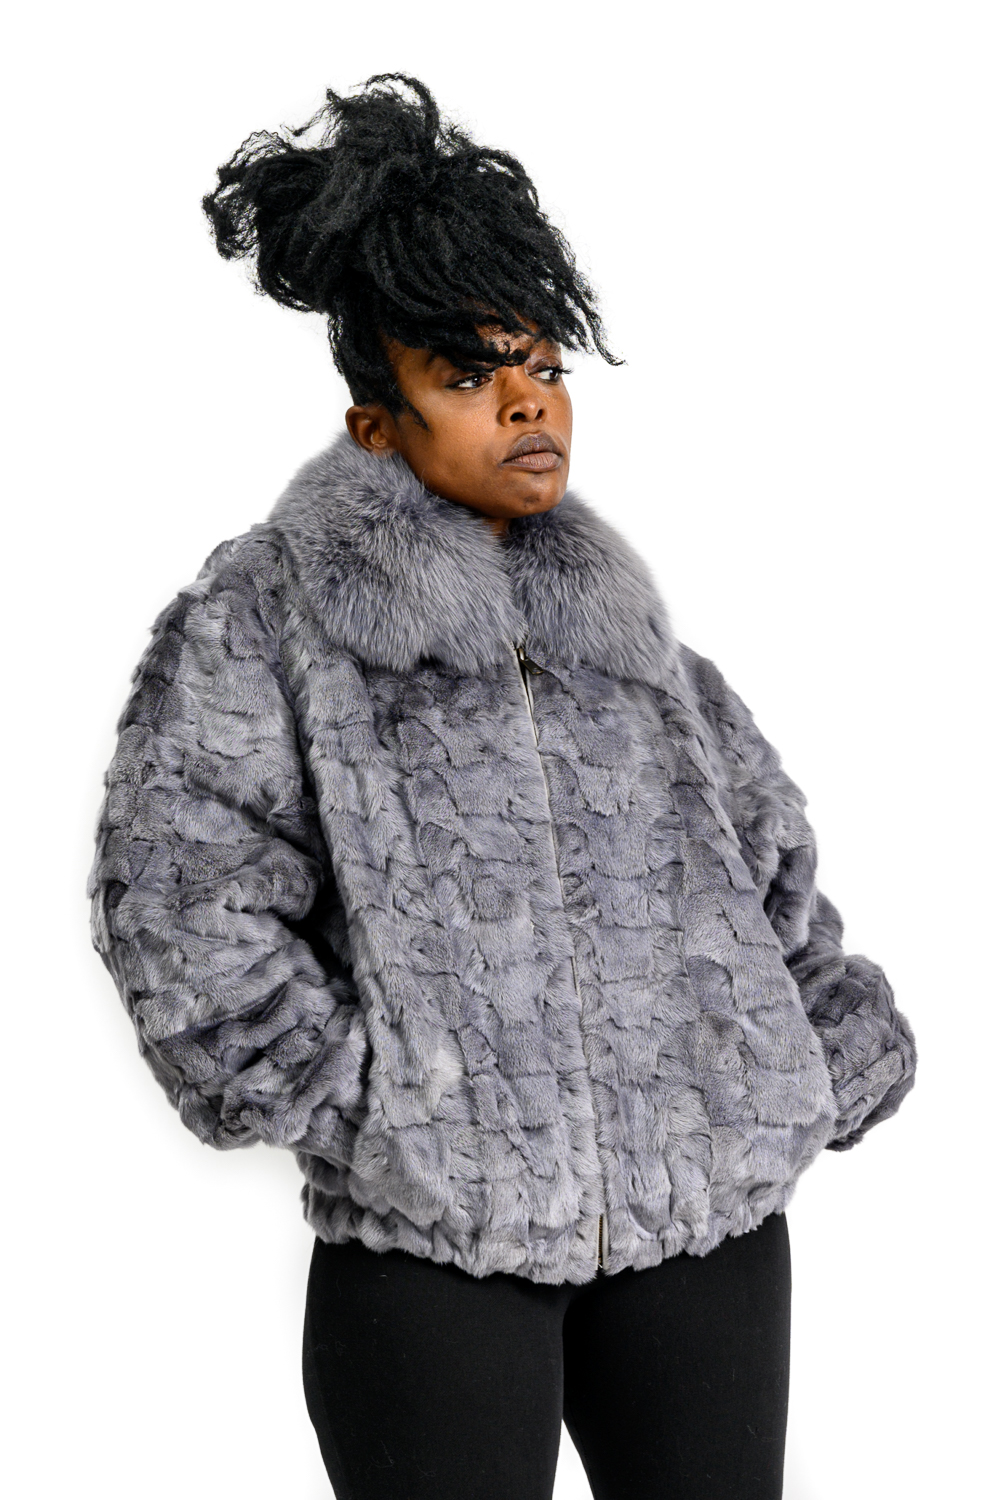 W95 2 Gray Mink Fur Sections Jacket with Fox Collar